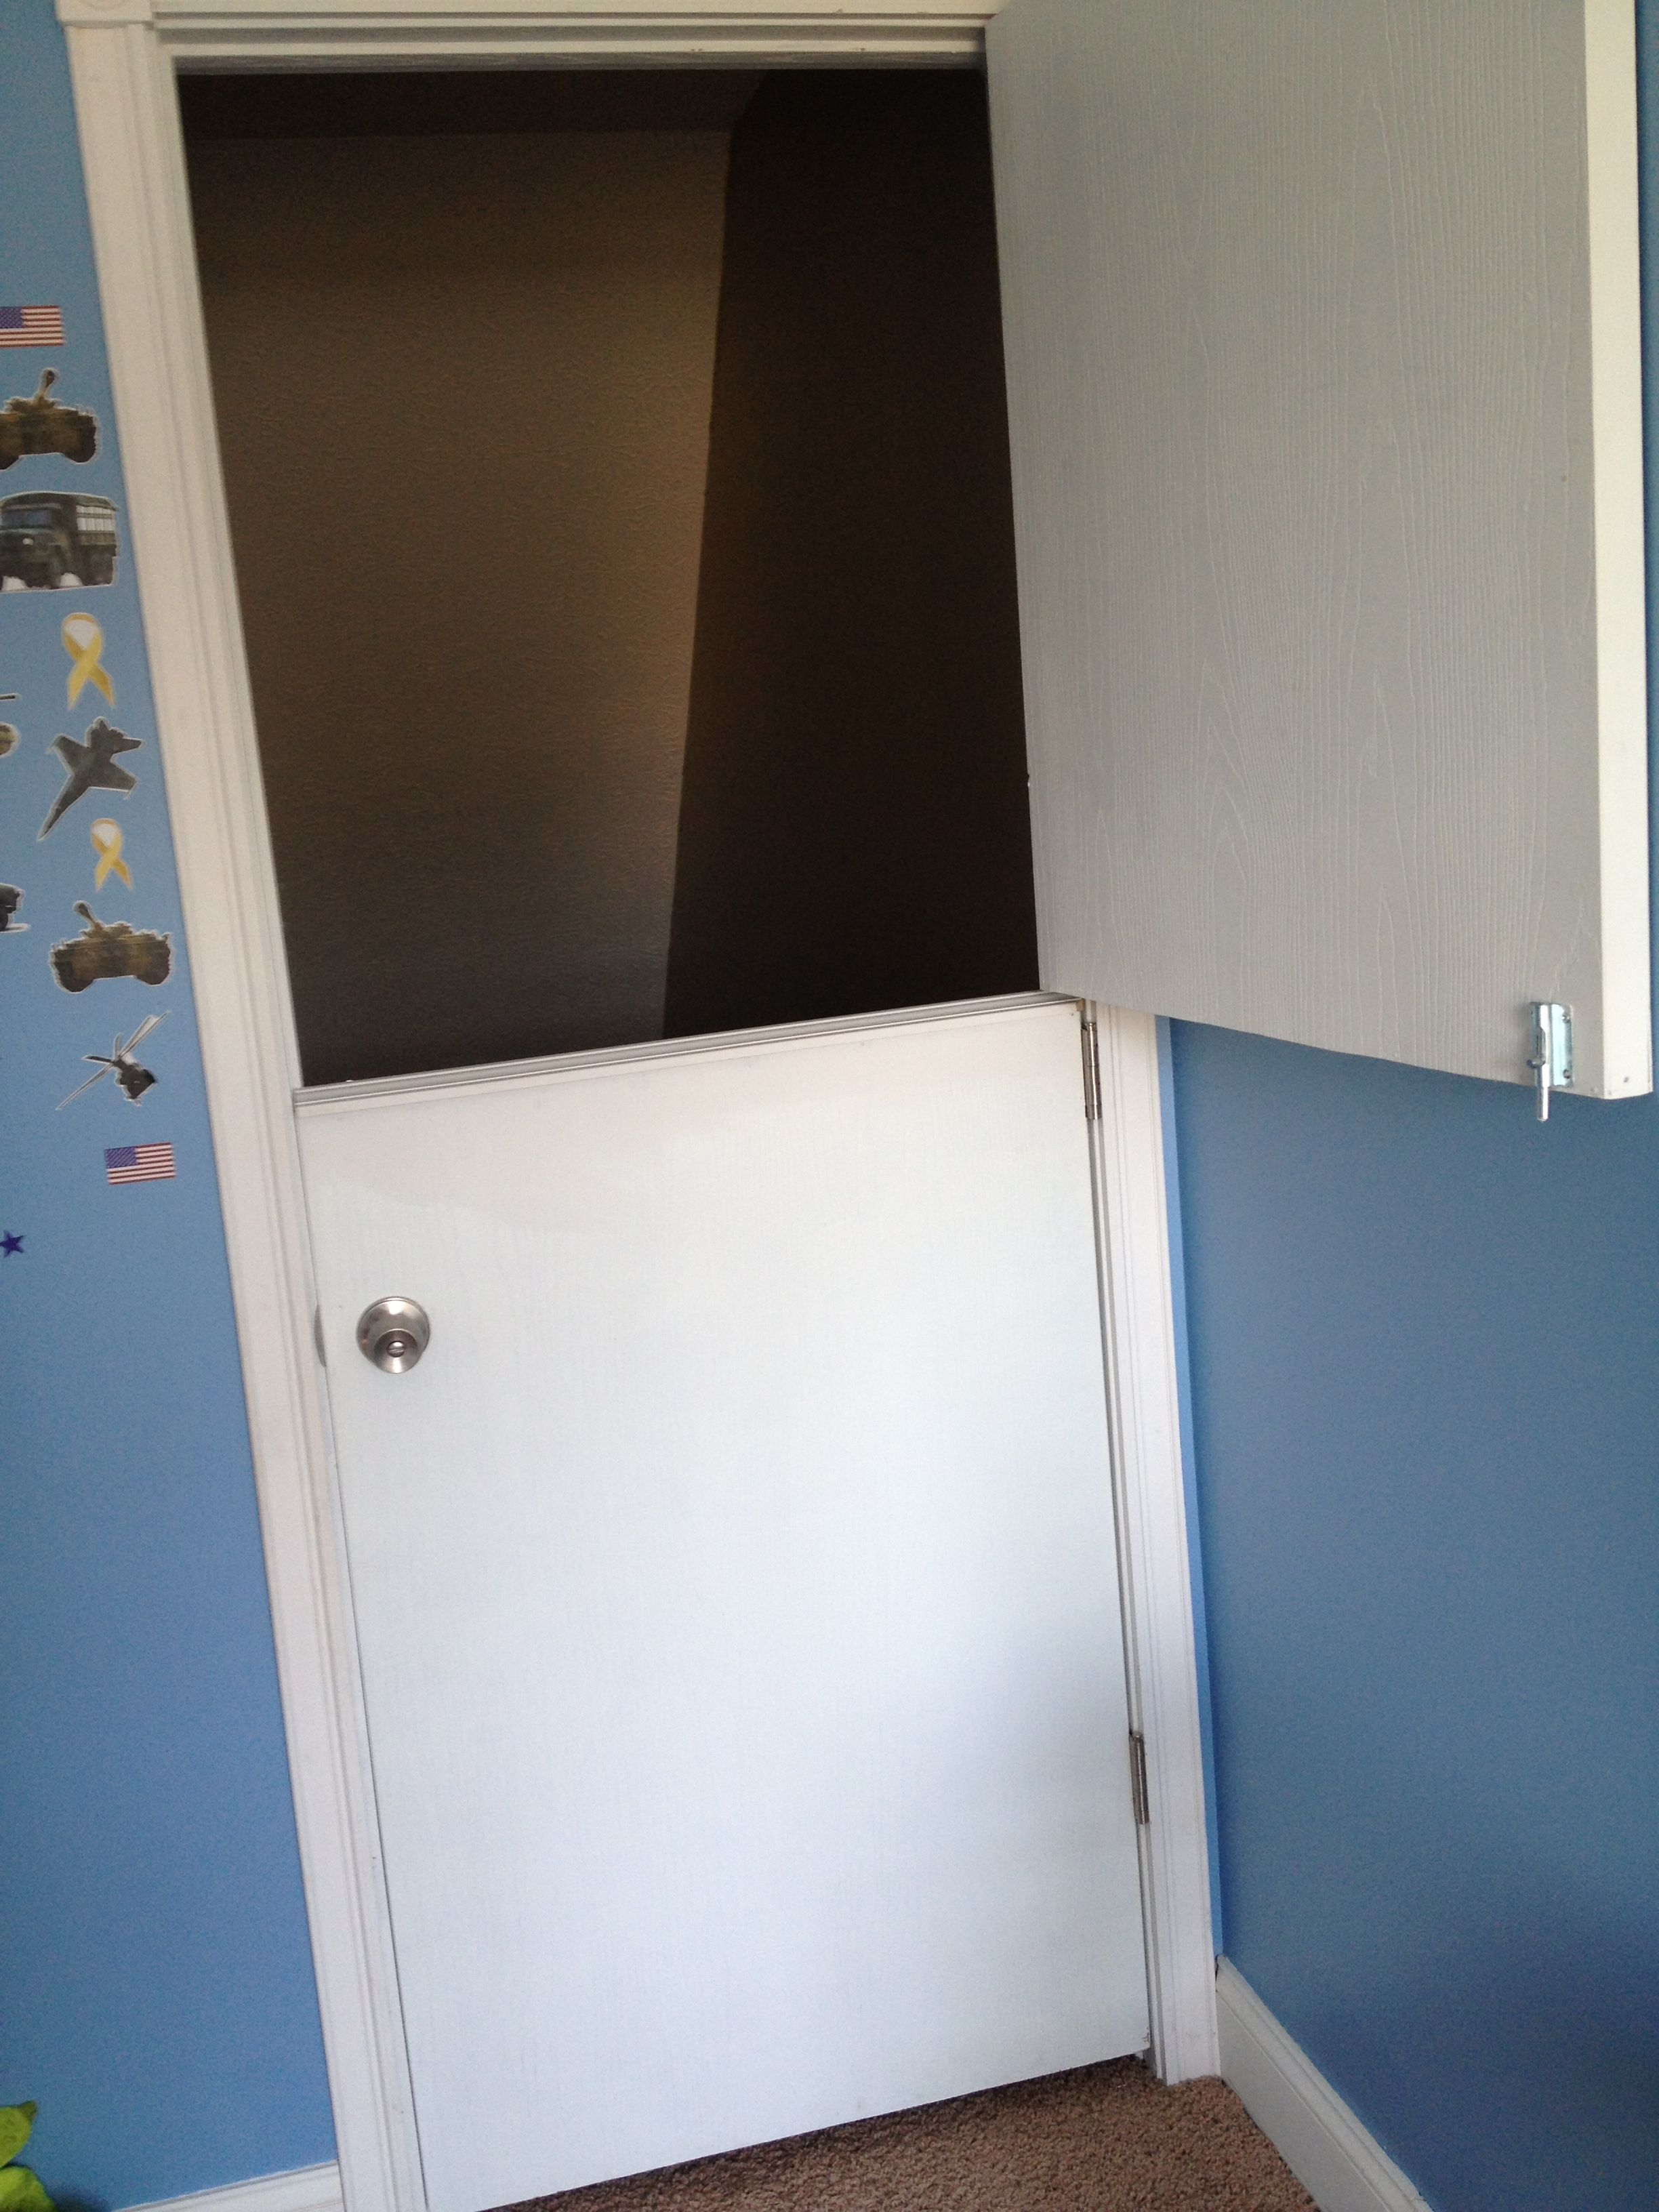 Diy Dutch Door For Toddler Room So Little Ones Can T Fall Down The Stairs Or Scale One Of Those Cheaply Made Child Gates Home Diy Diy Stairs Diy Household